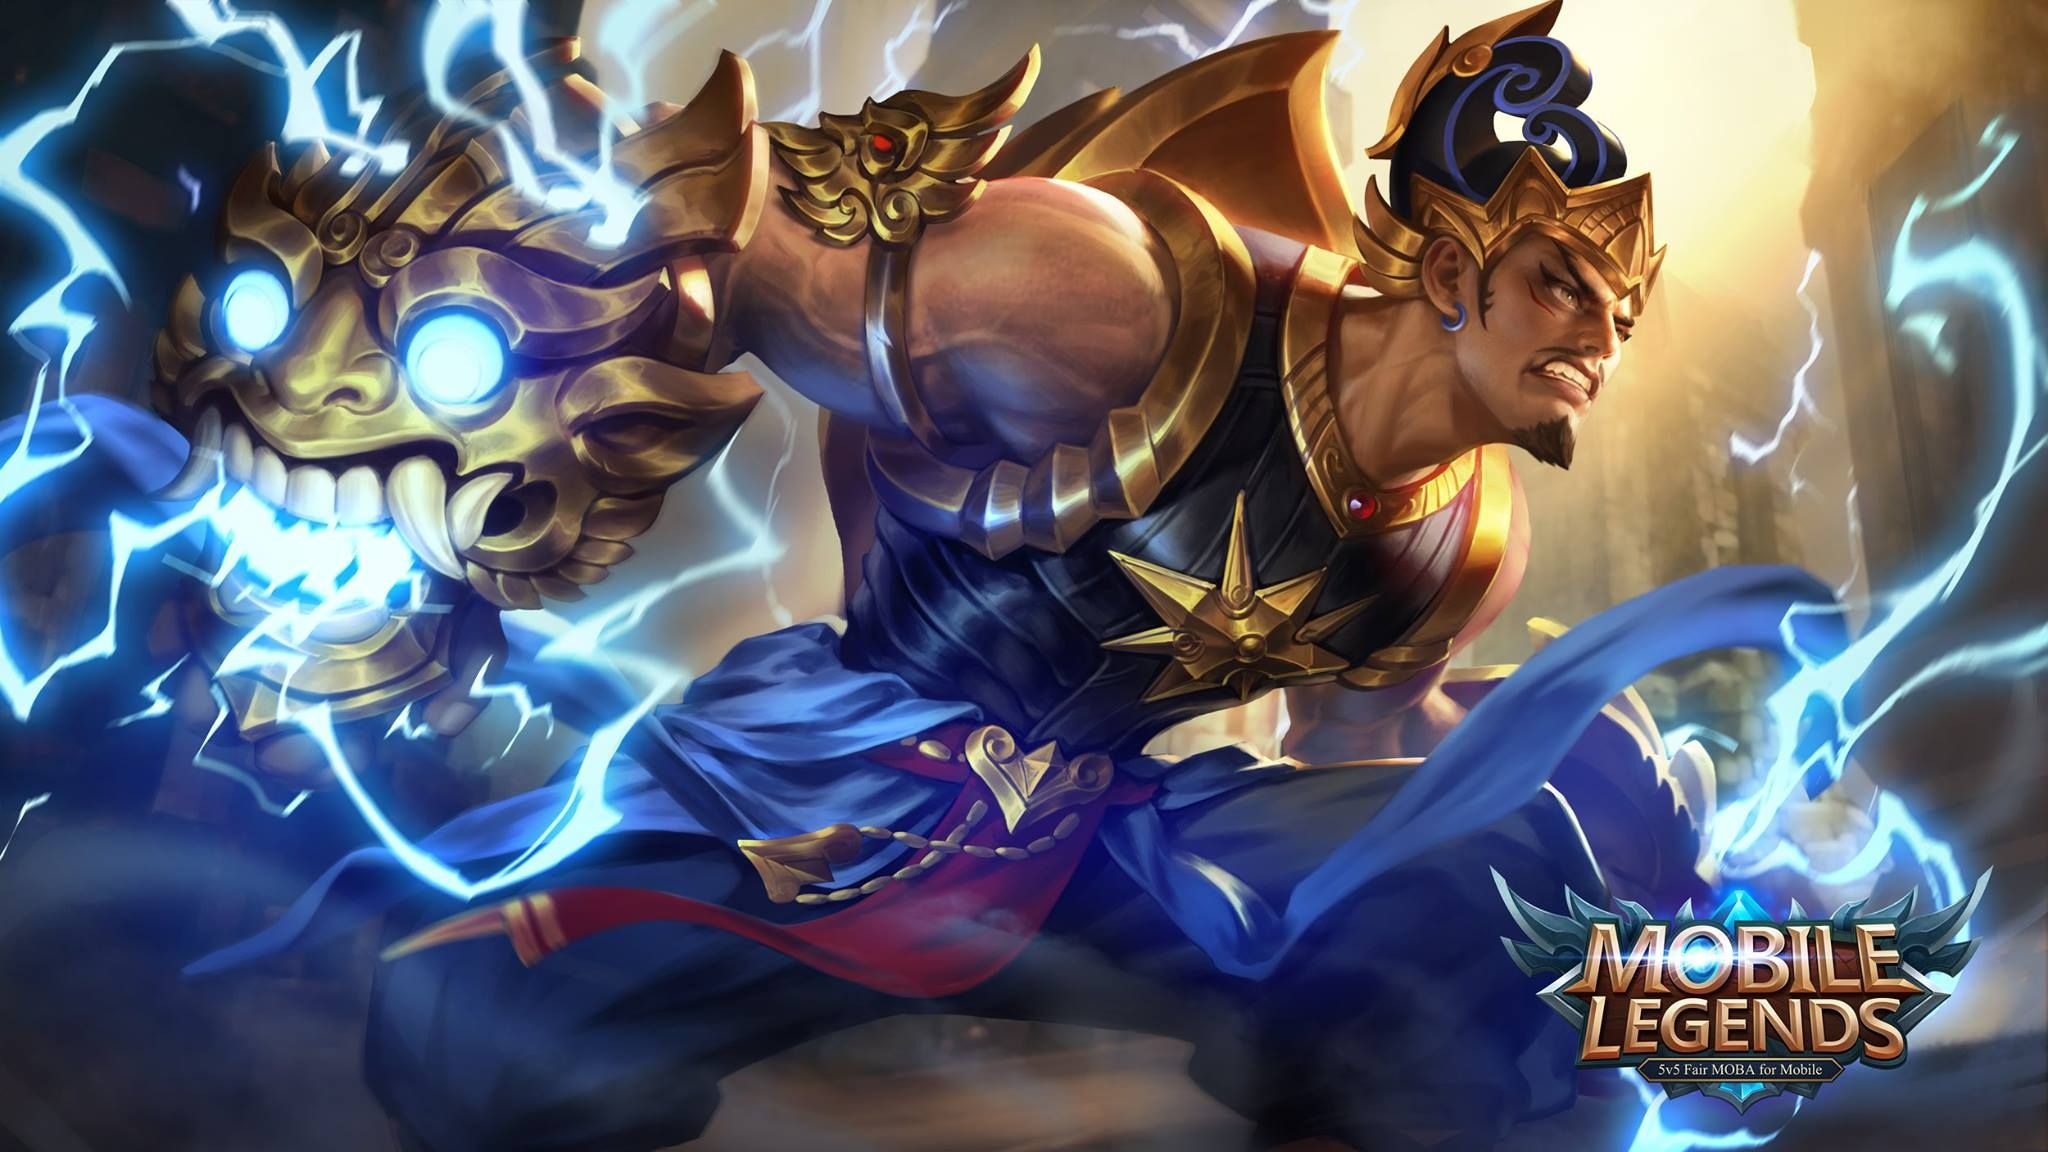 Image for Awesome Wallpaper HD Mobile Legends Ws018ml  Mobile